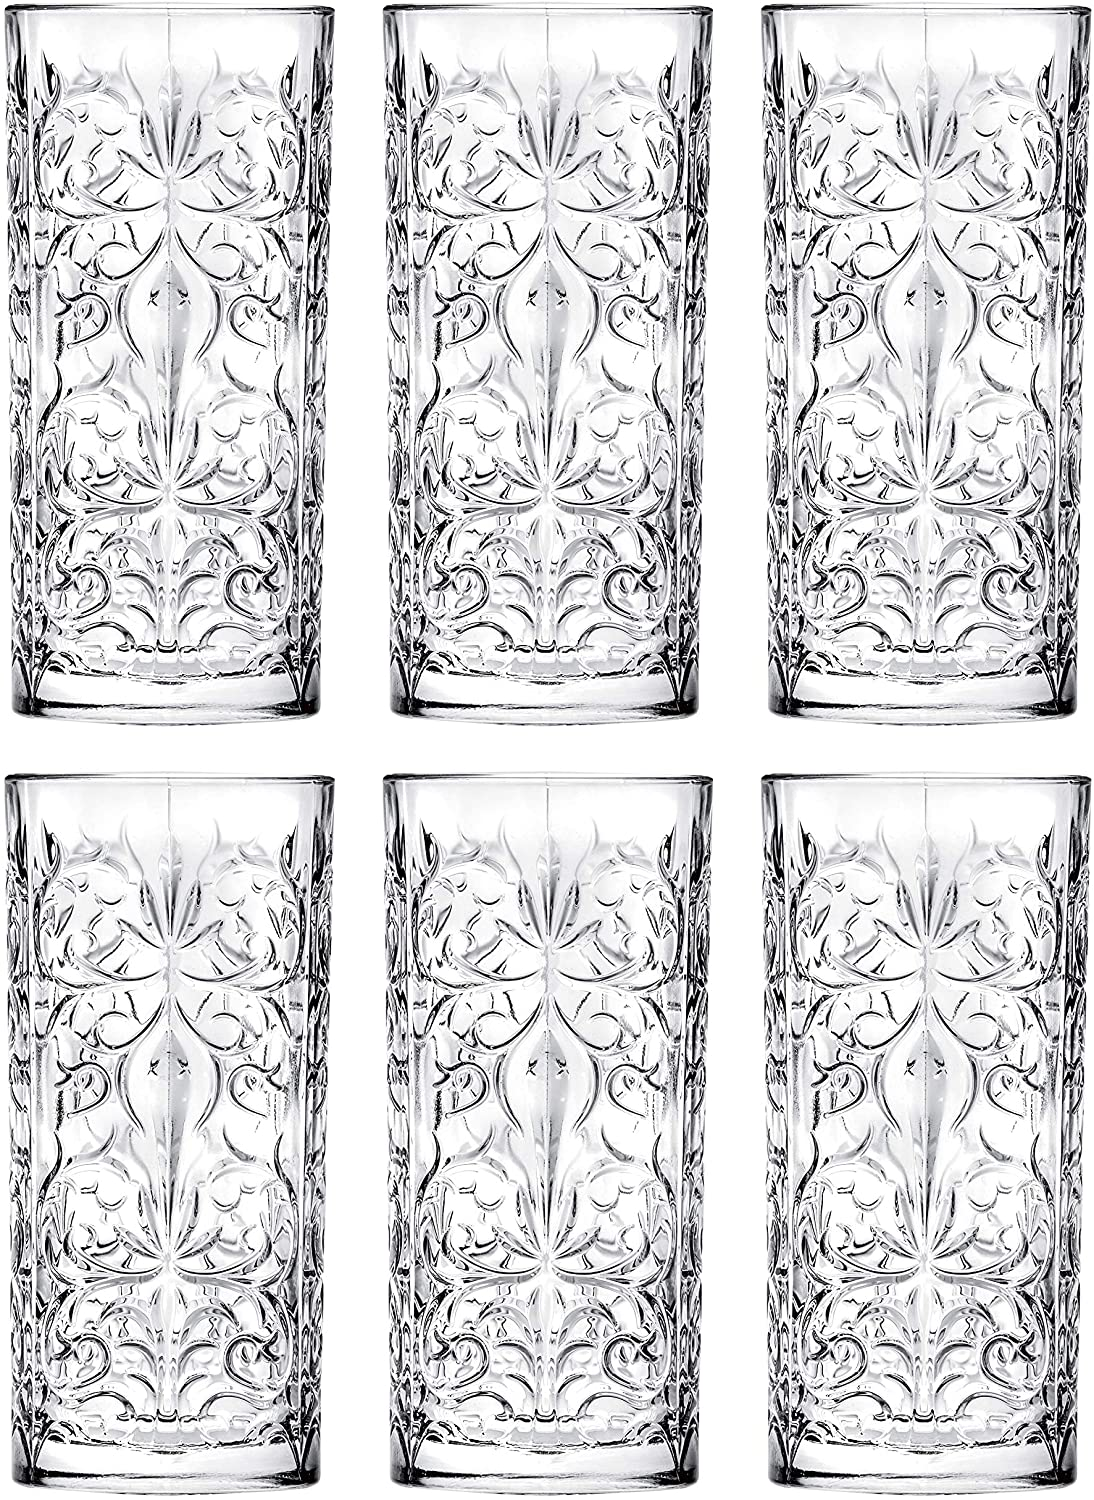 Highball - Glass - Set of 6 - Hiball Glasses - Lead Free Crystal - Beautiful Tattoo Design - Drinking Tumblers - for Water, Juice, Wine, Beer and Cocktails - 13 oz. - by Barski - Made in Europe